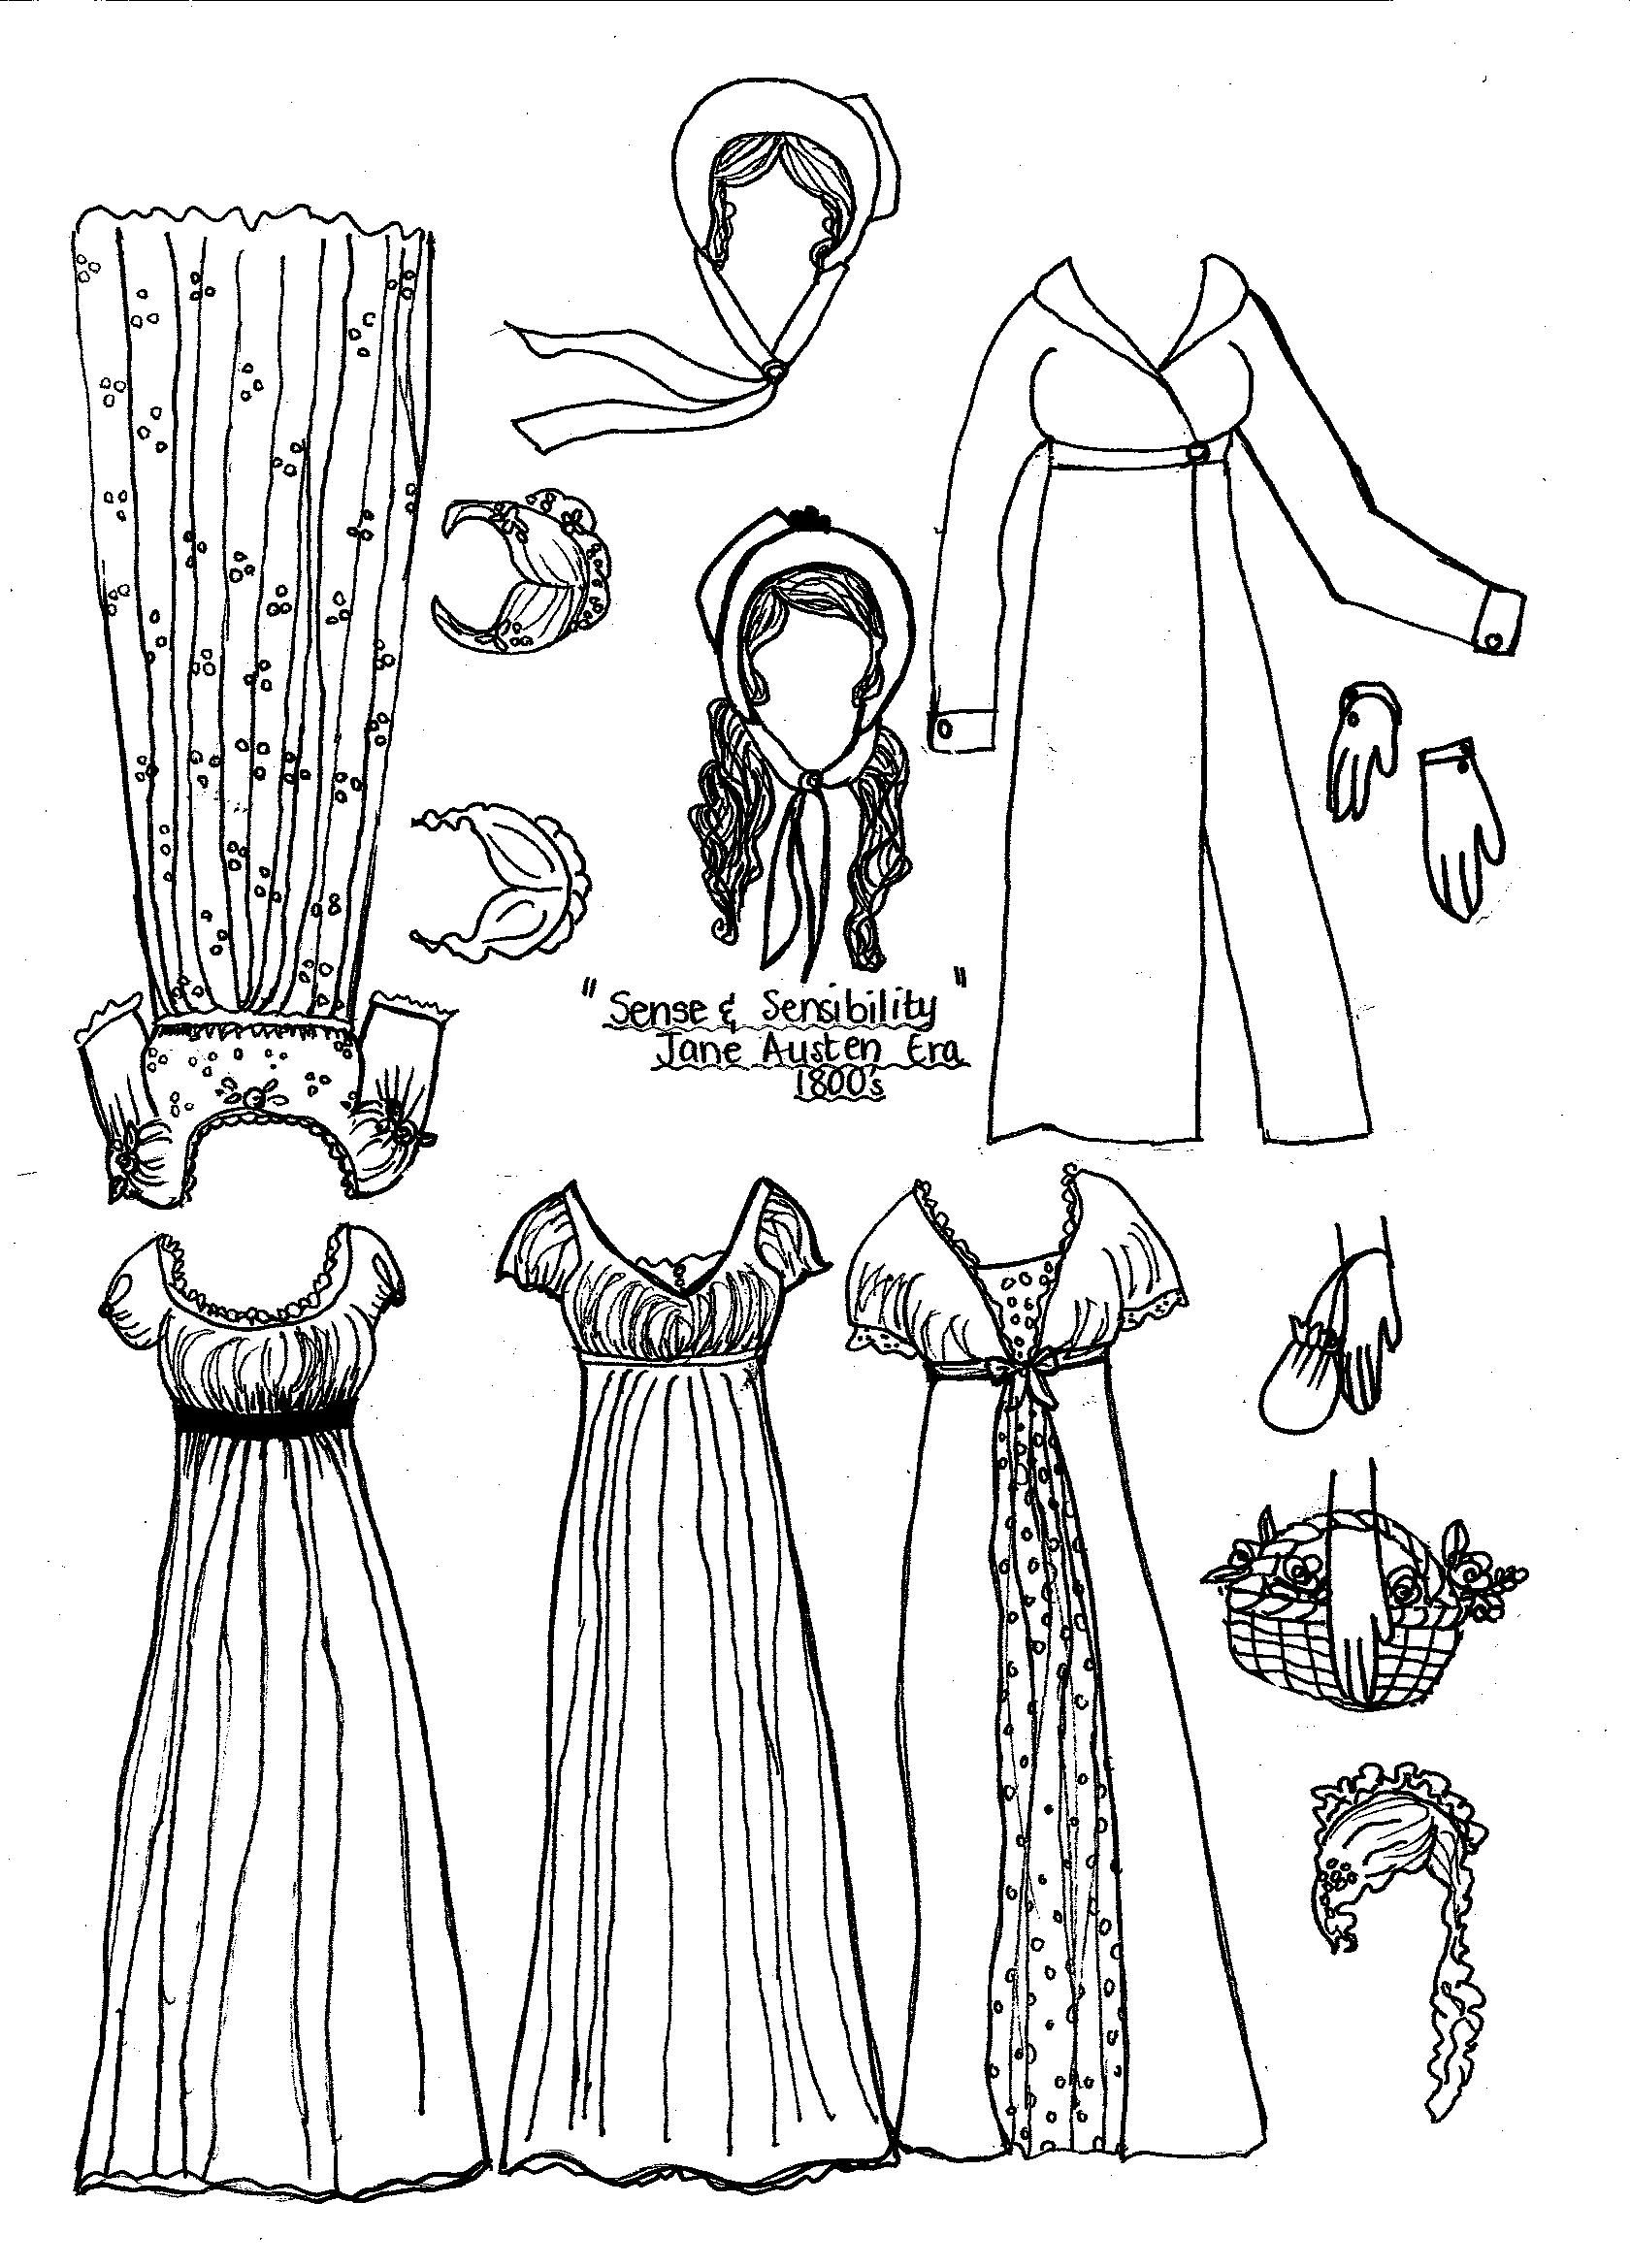 jane austen coloring pages - paper dolls jane austen dolls and regency